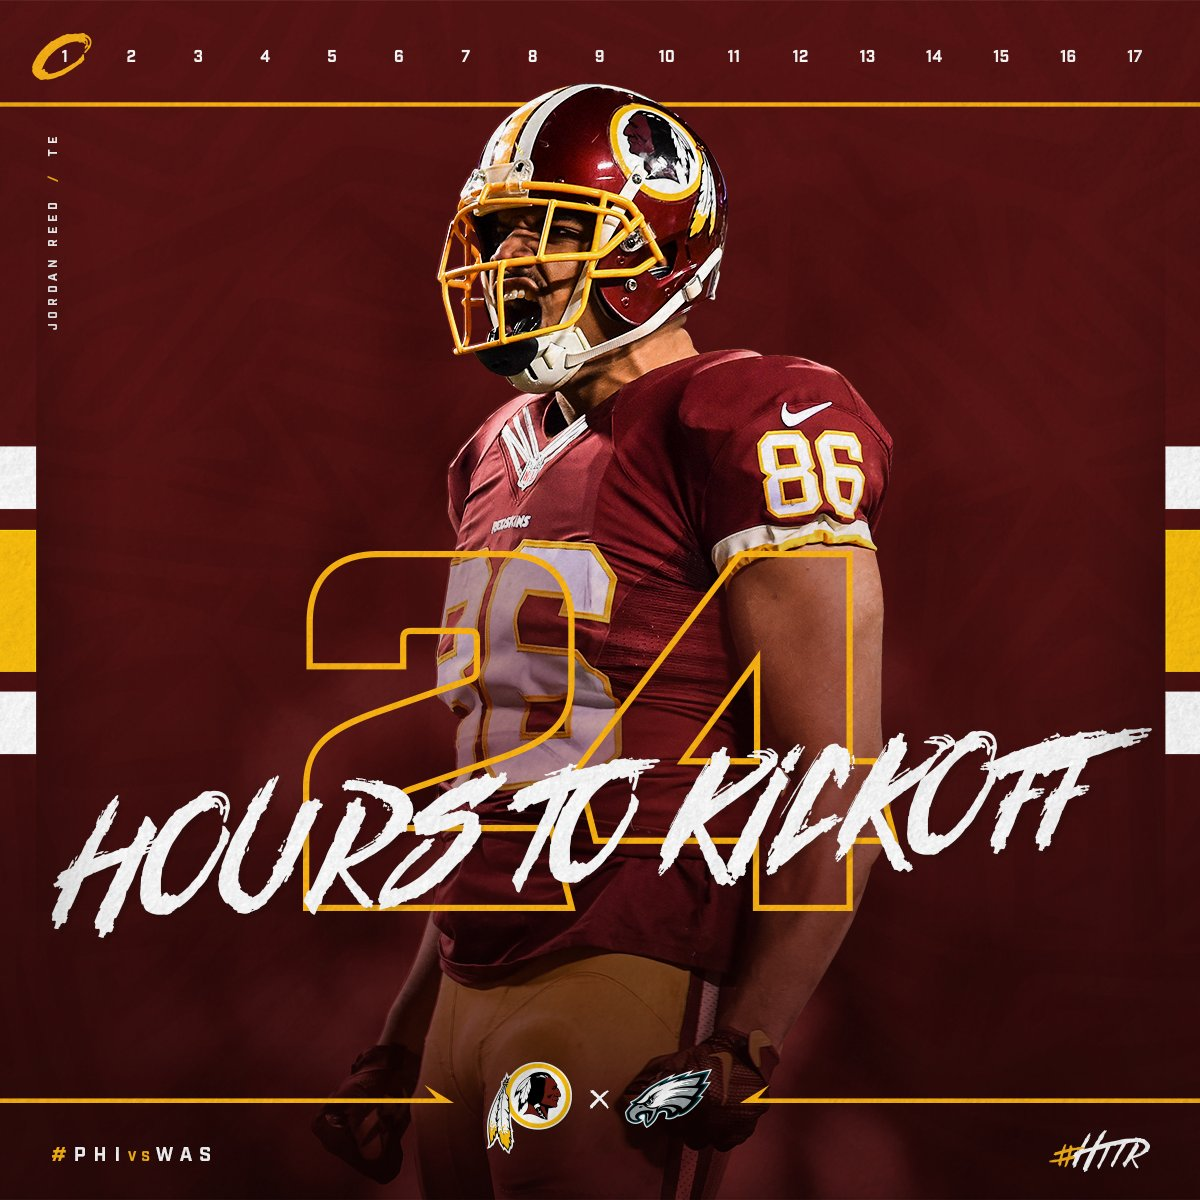 RT if you're ready for #Redskins kickoff! #HTTR #PHIvsWAS